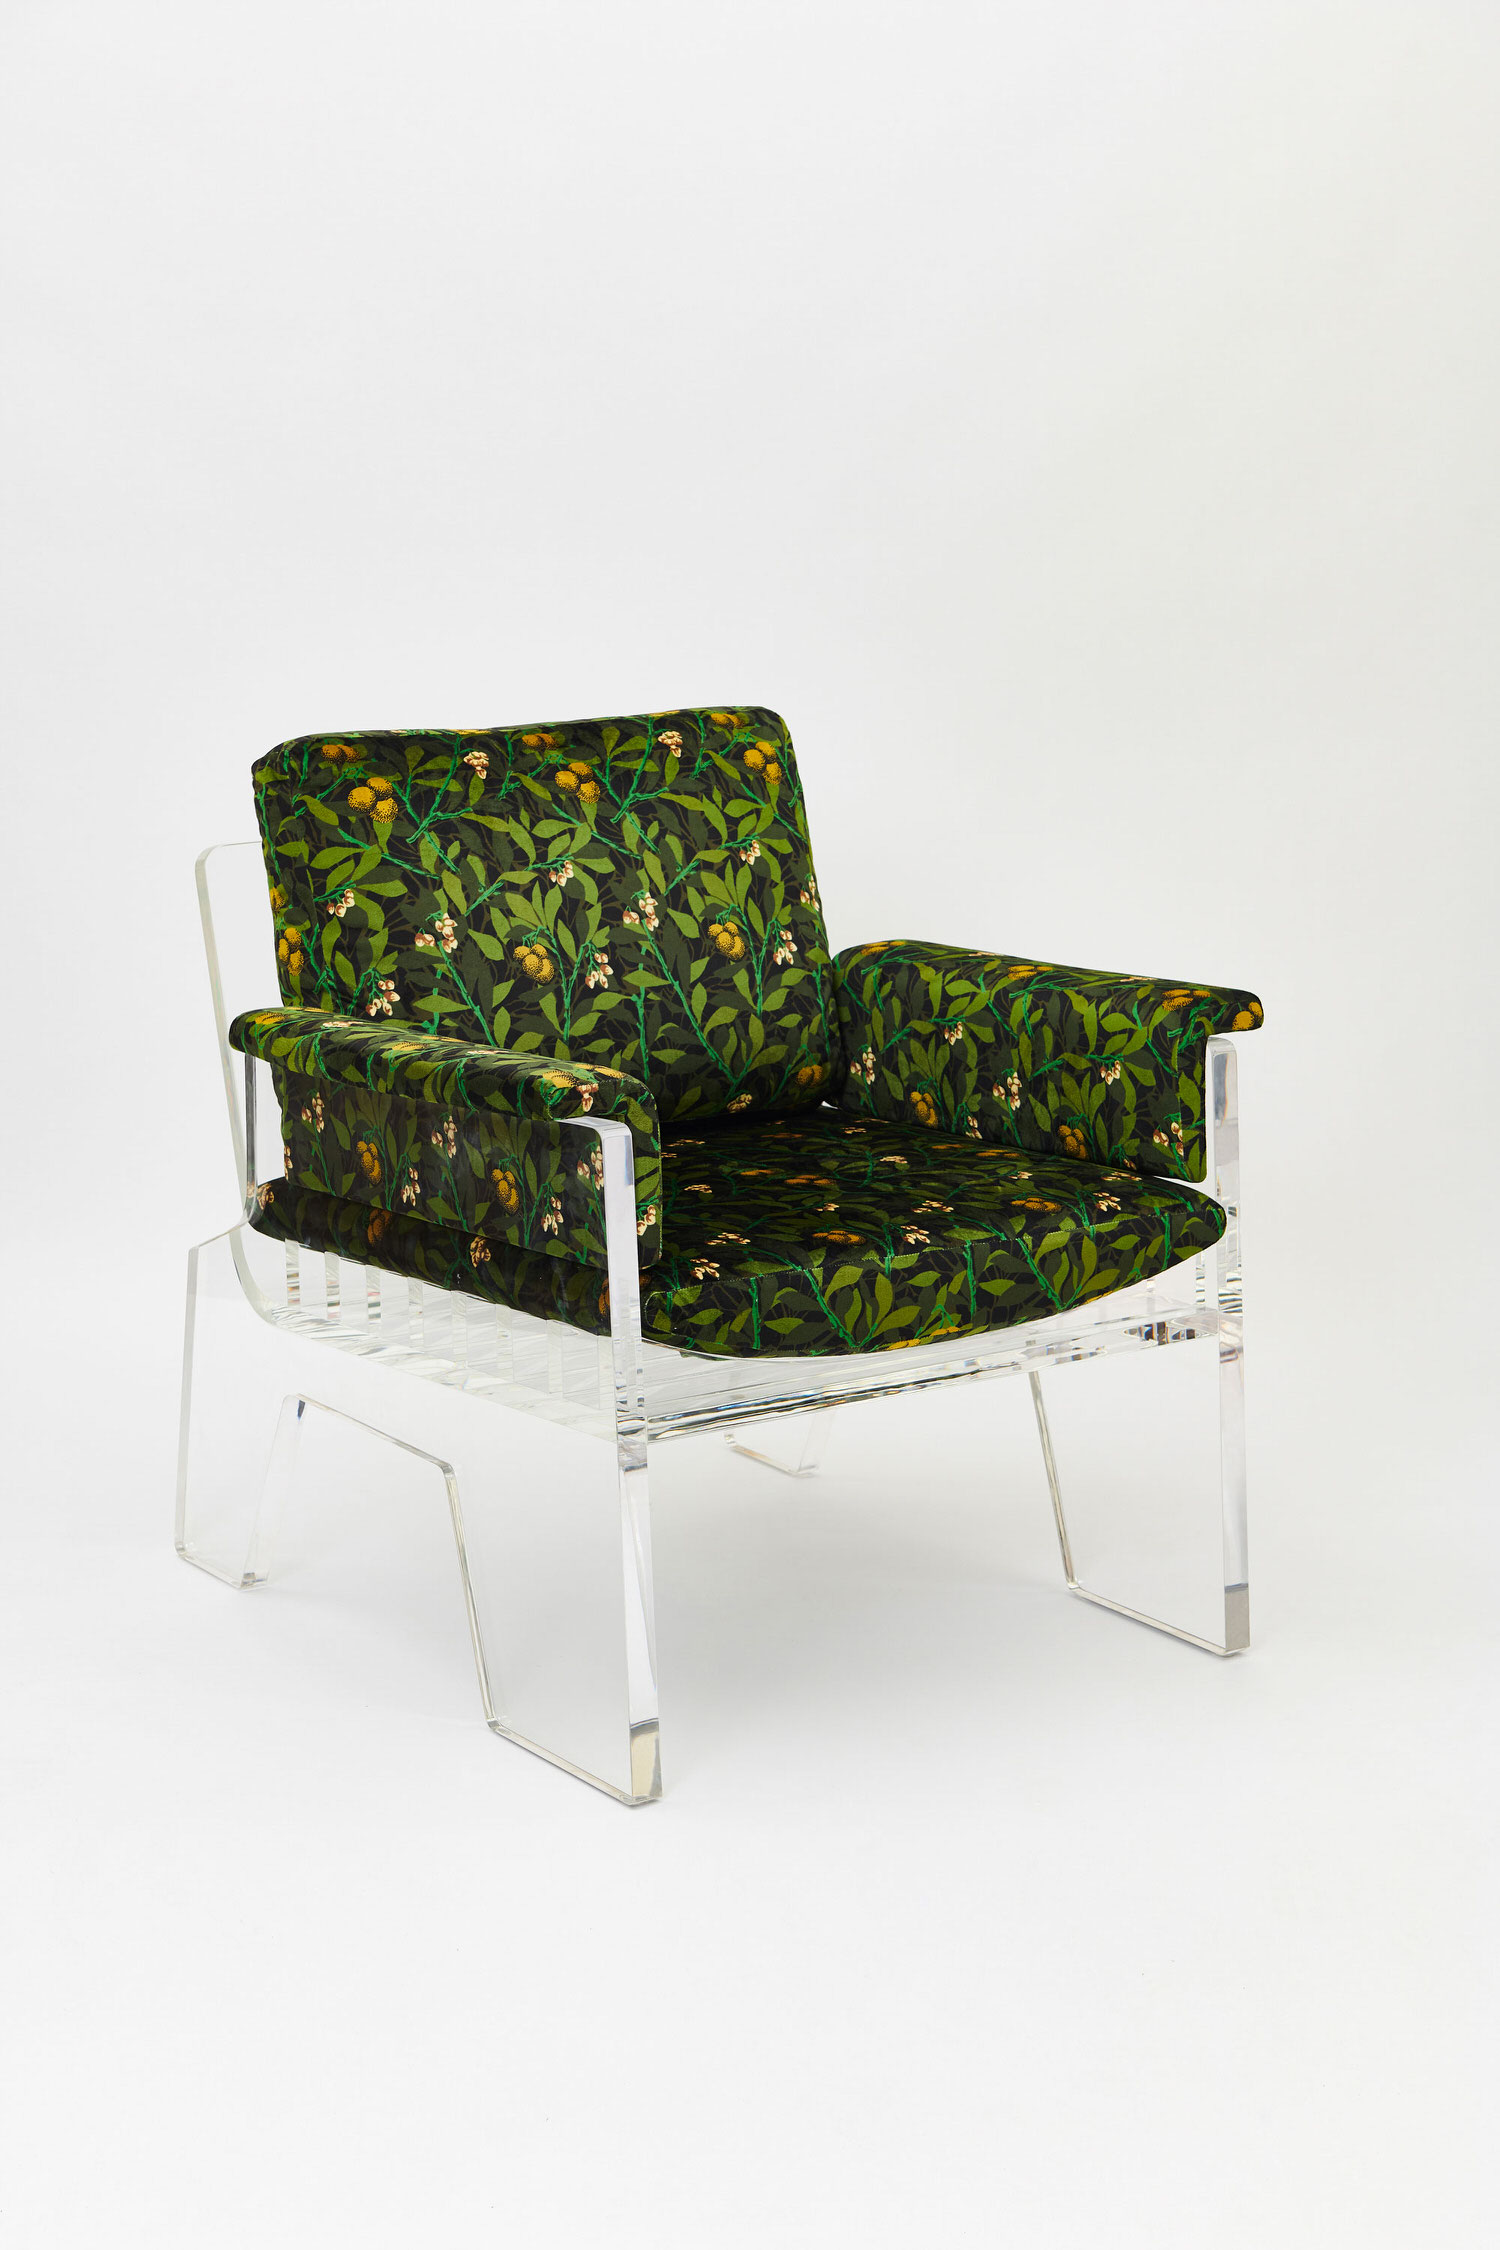 Aria Arcrylic Armchair, Coexist Shanghai, Objective Collection, Collectible Design China | Yellowtrace